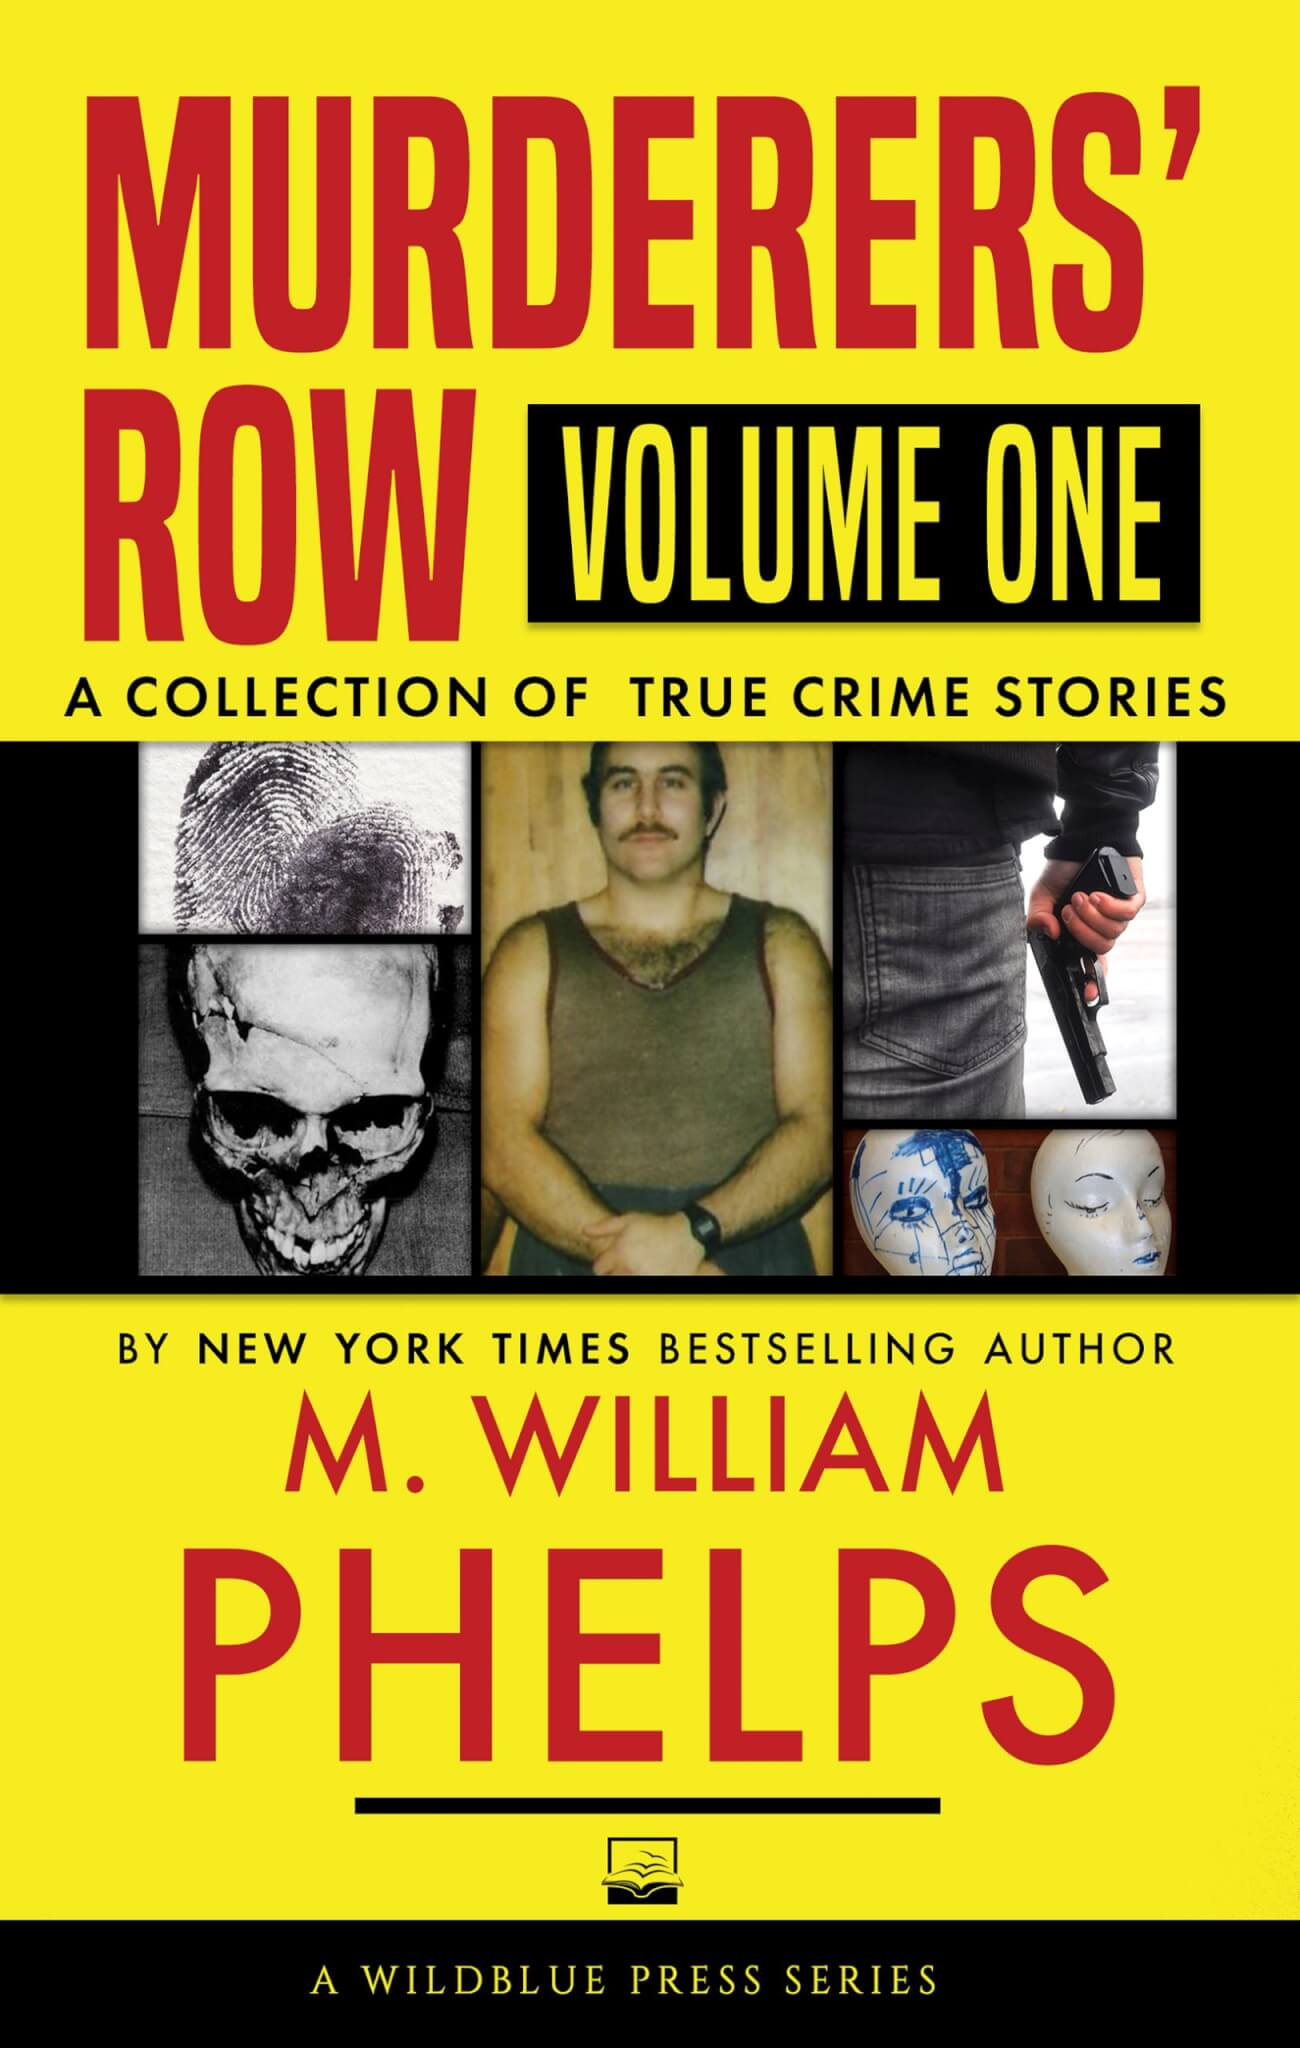 Murderers' Row True Crime Volume 1